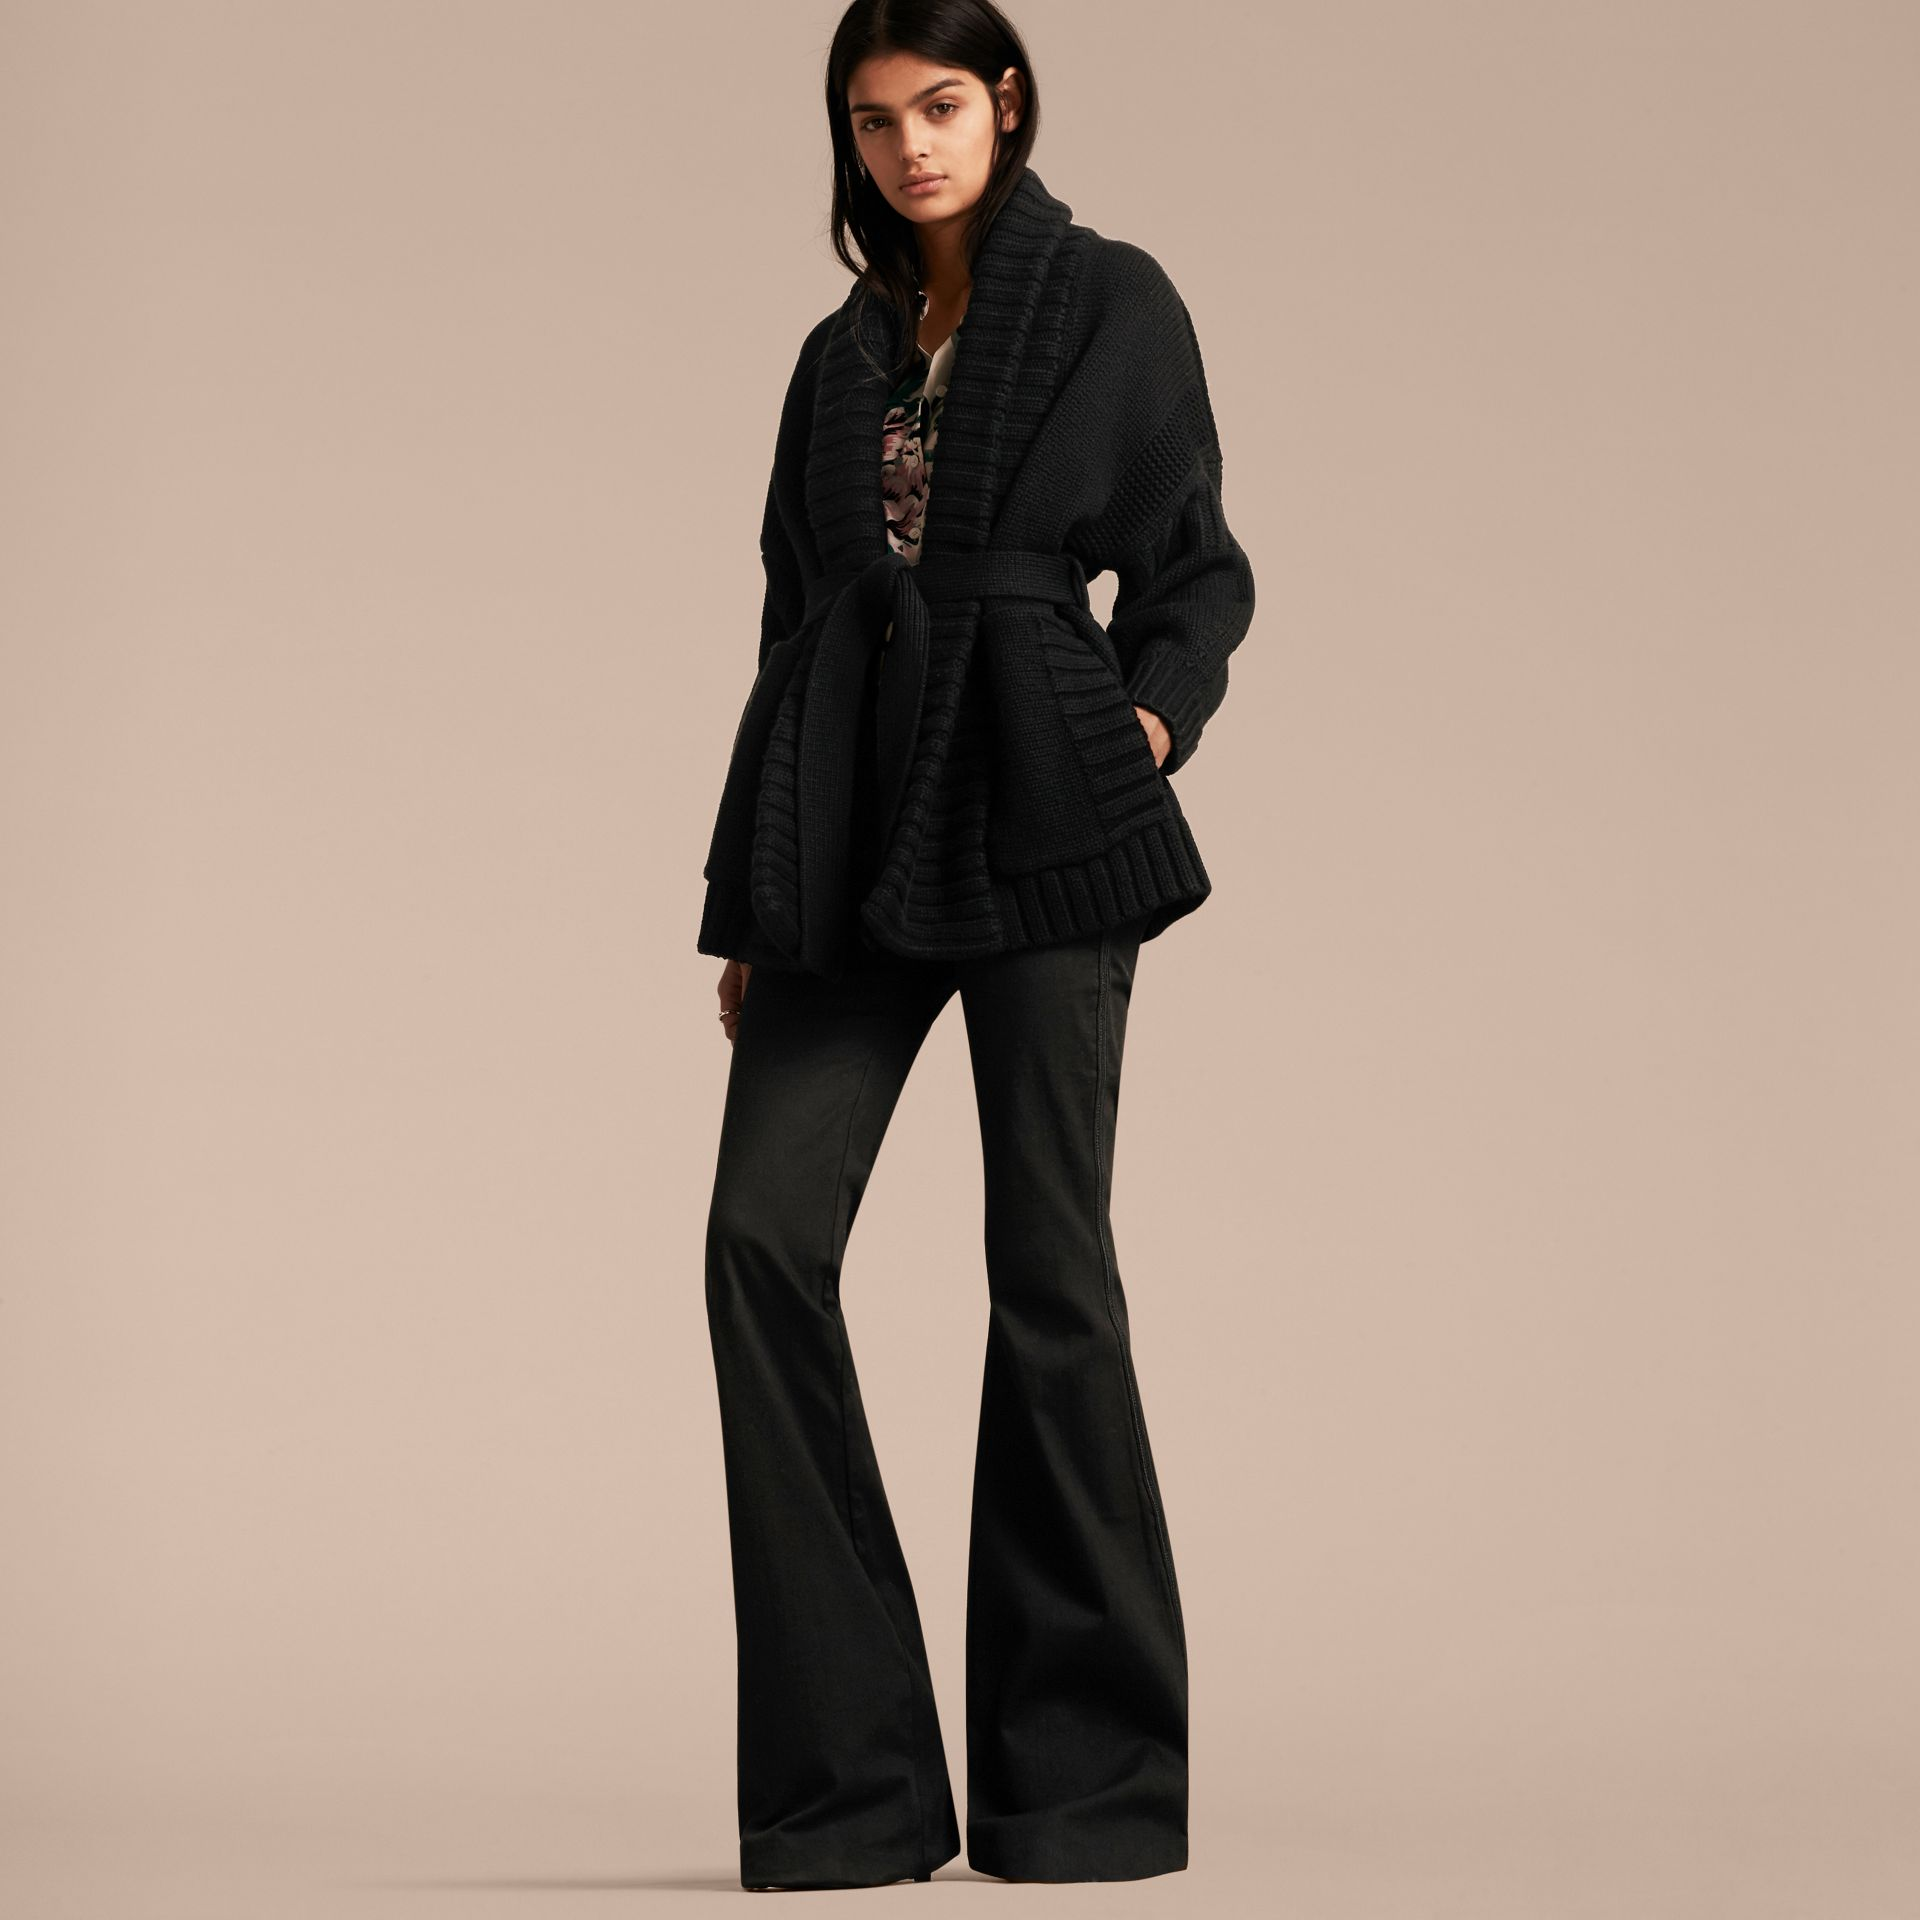 Black Knitted Wool Cashmere Belted Cardigan Jacket Black - gallery image 6